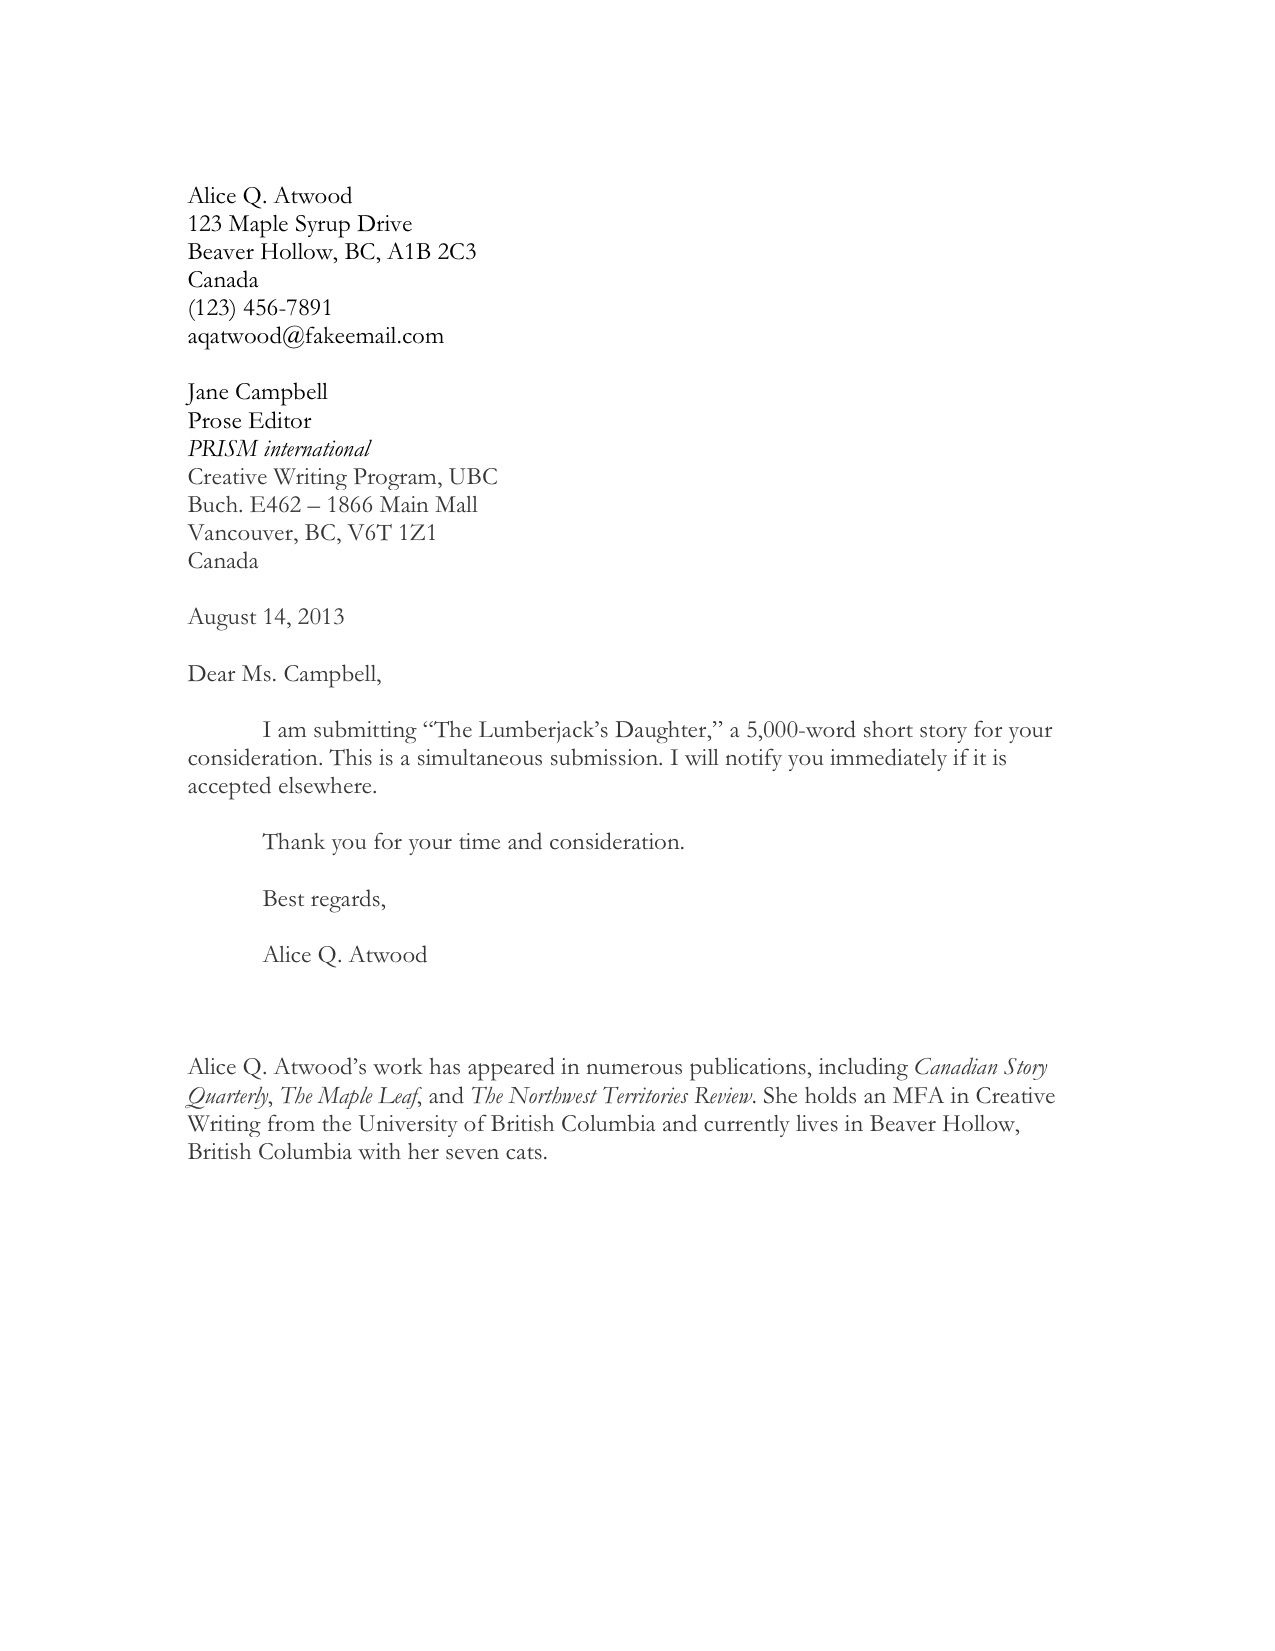 Application letter sample word for Cover letter smaples